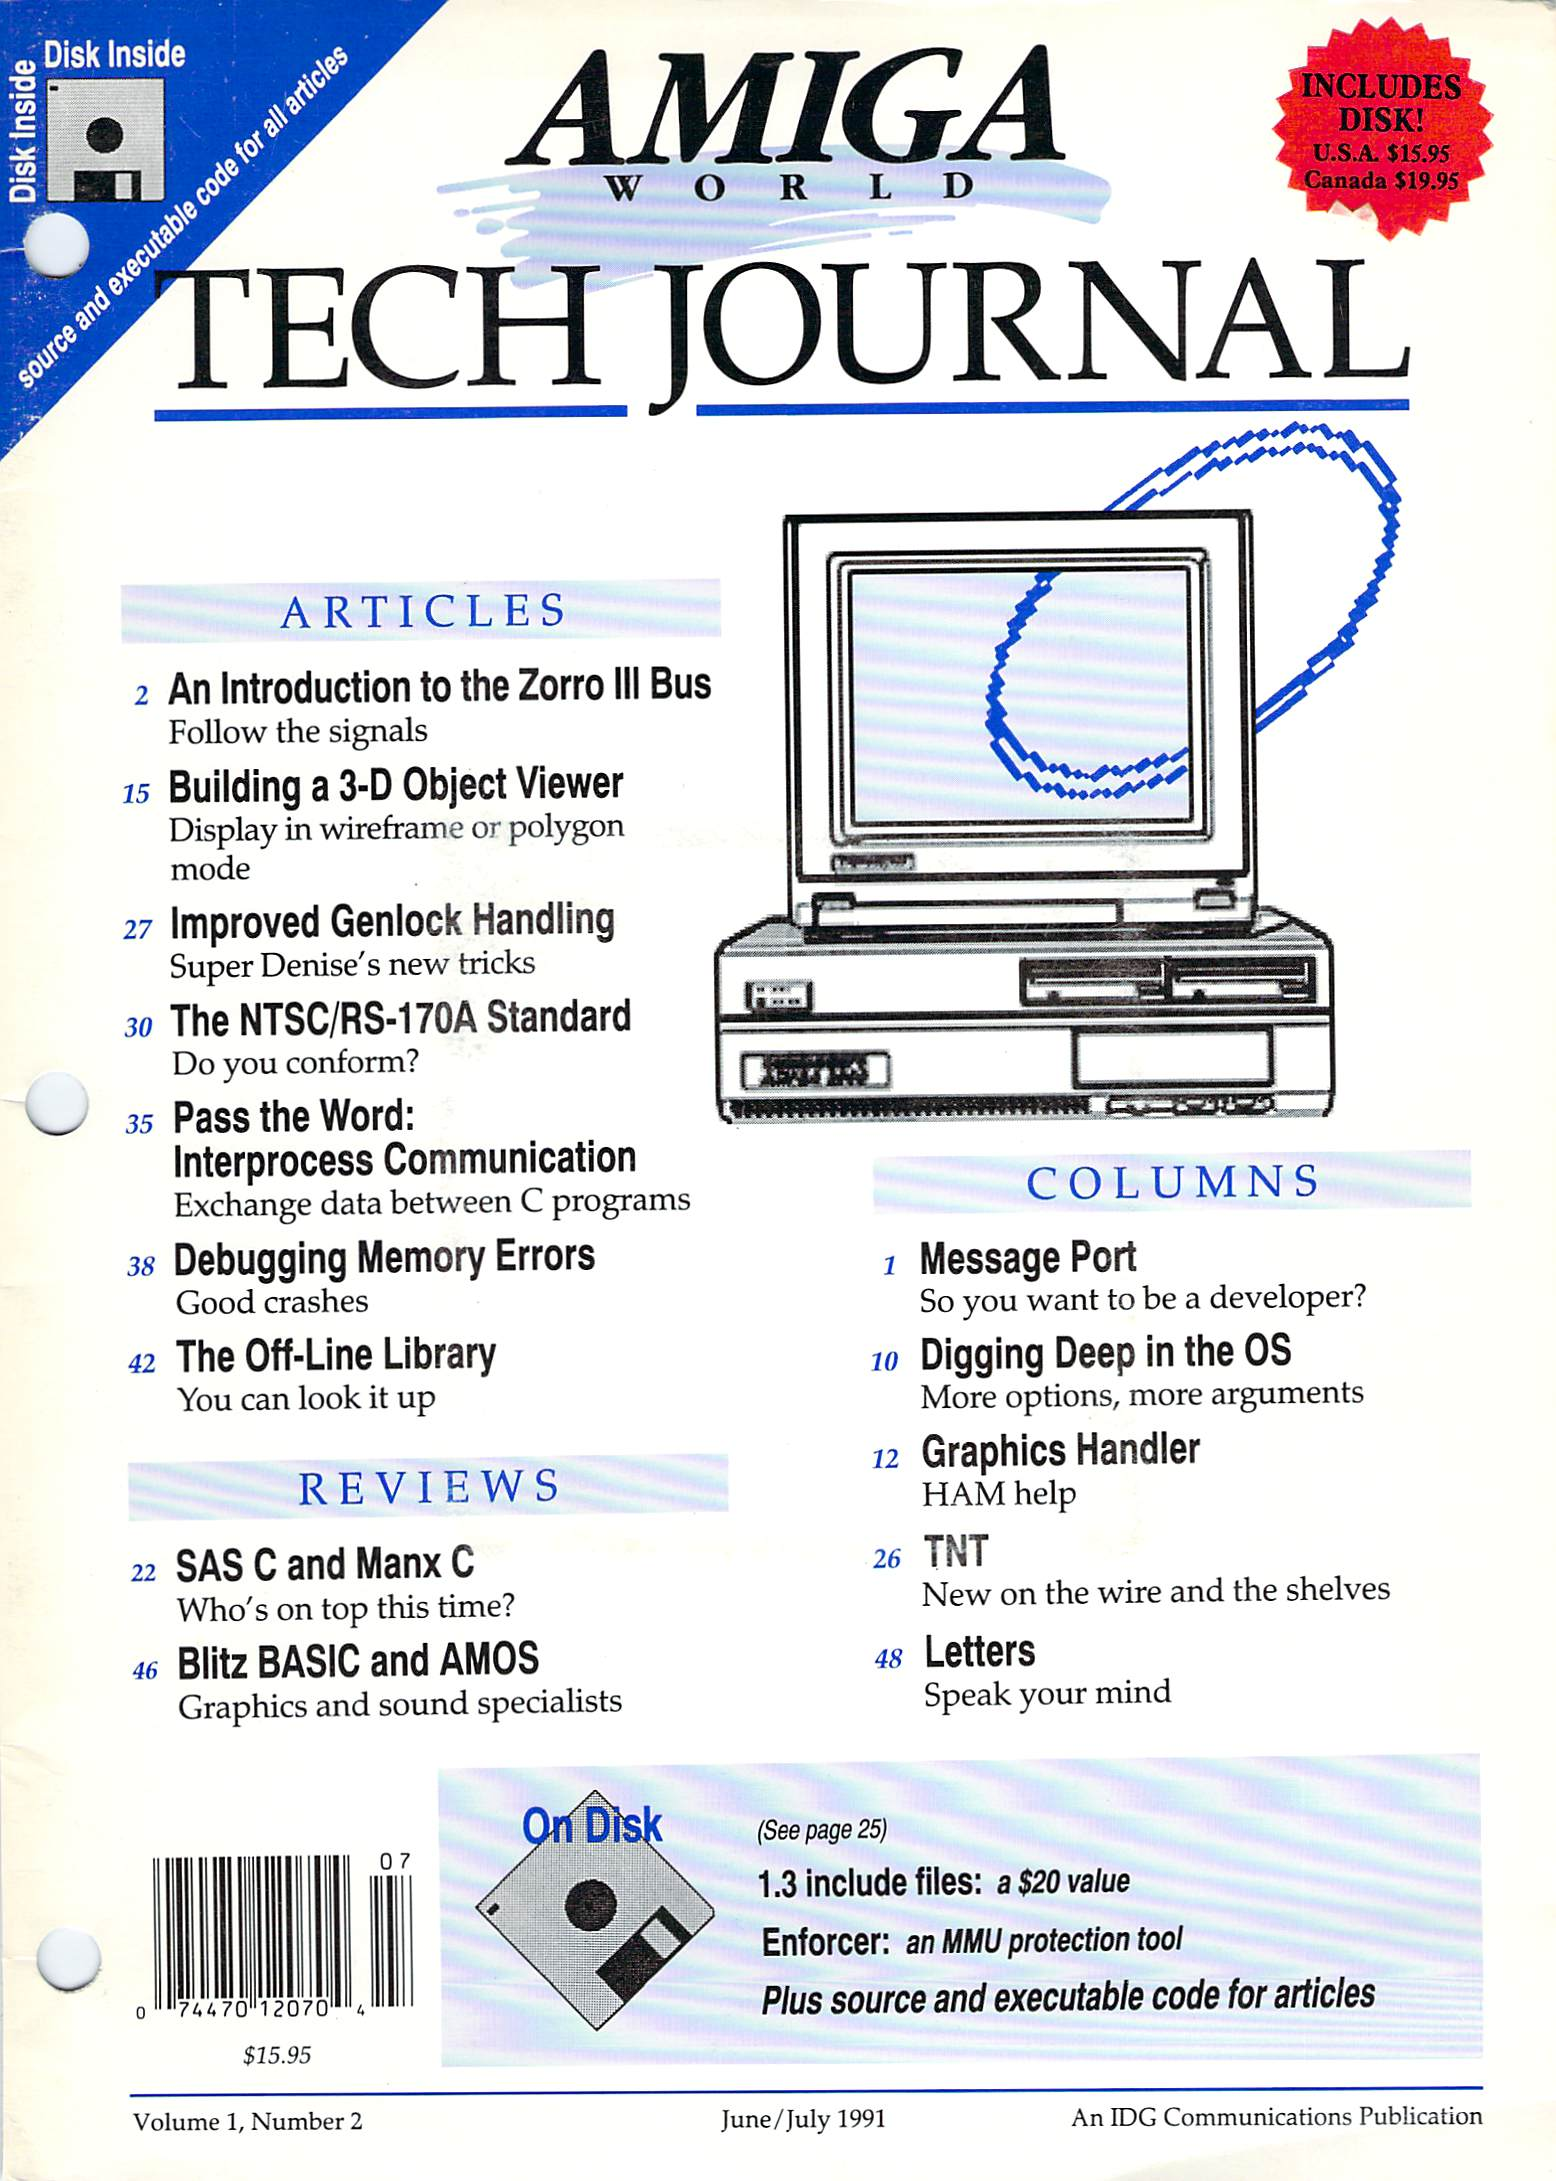 Amiga_World_Tech_Journal_Vol_01_02_1991_Jun_Jul-01